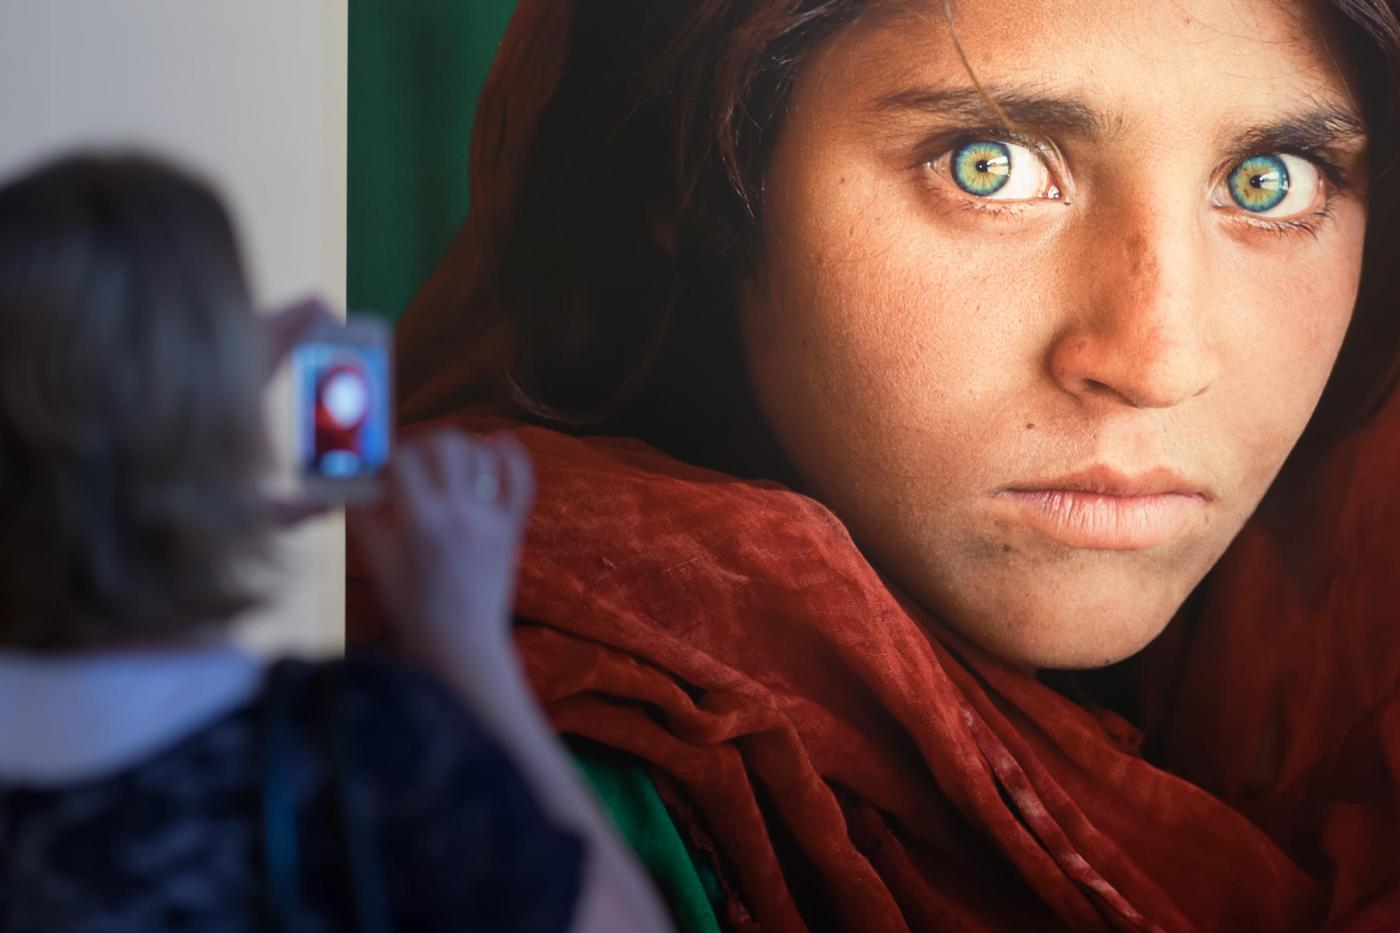 Steve McCurry, ragazza afghana